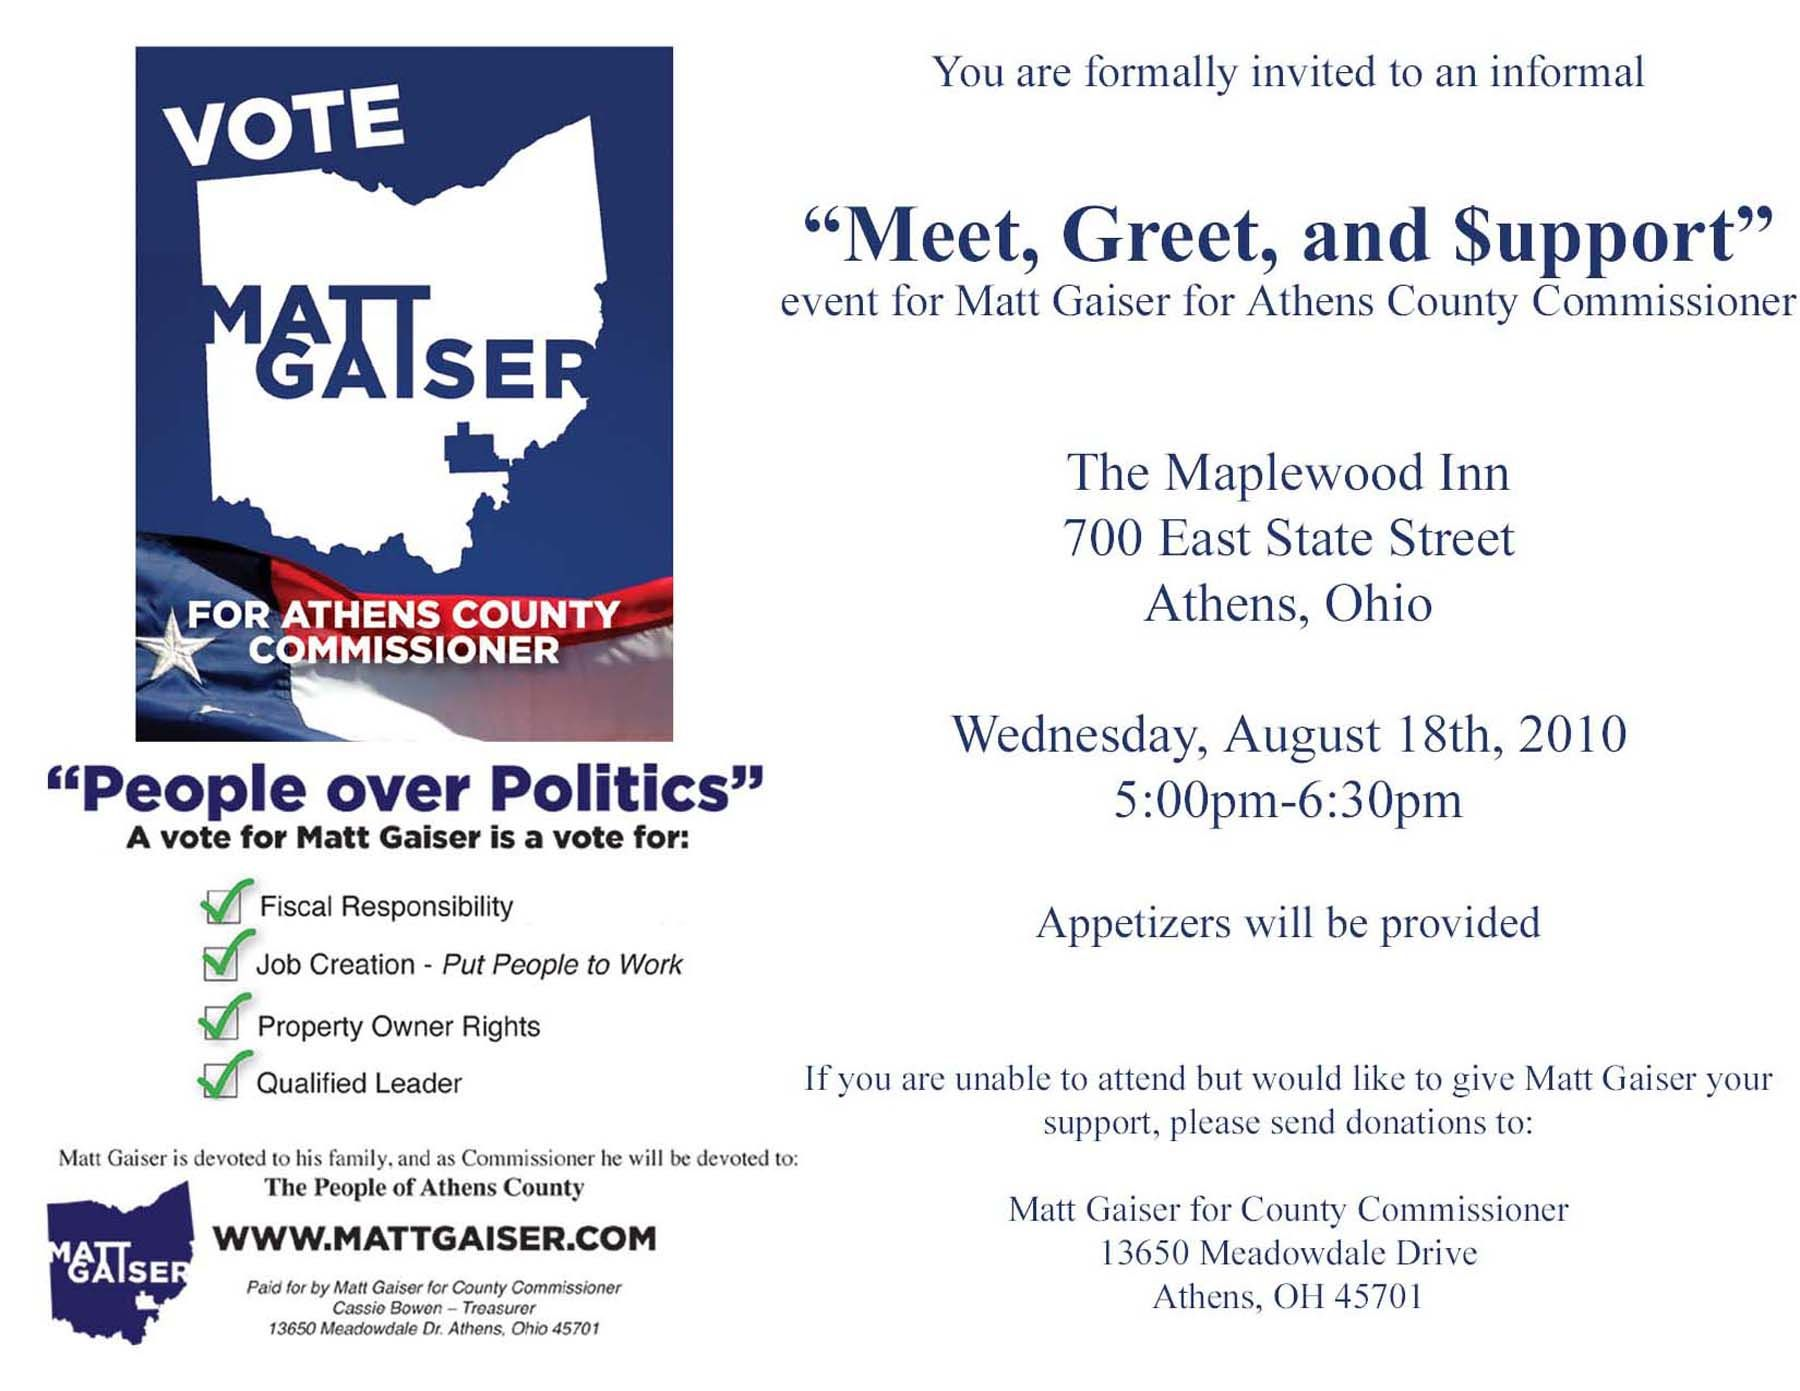 Political fundraiser invitations | Meet, Greet and $upport ...